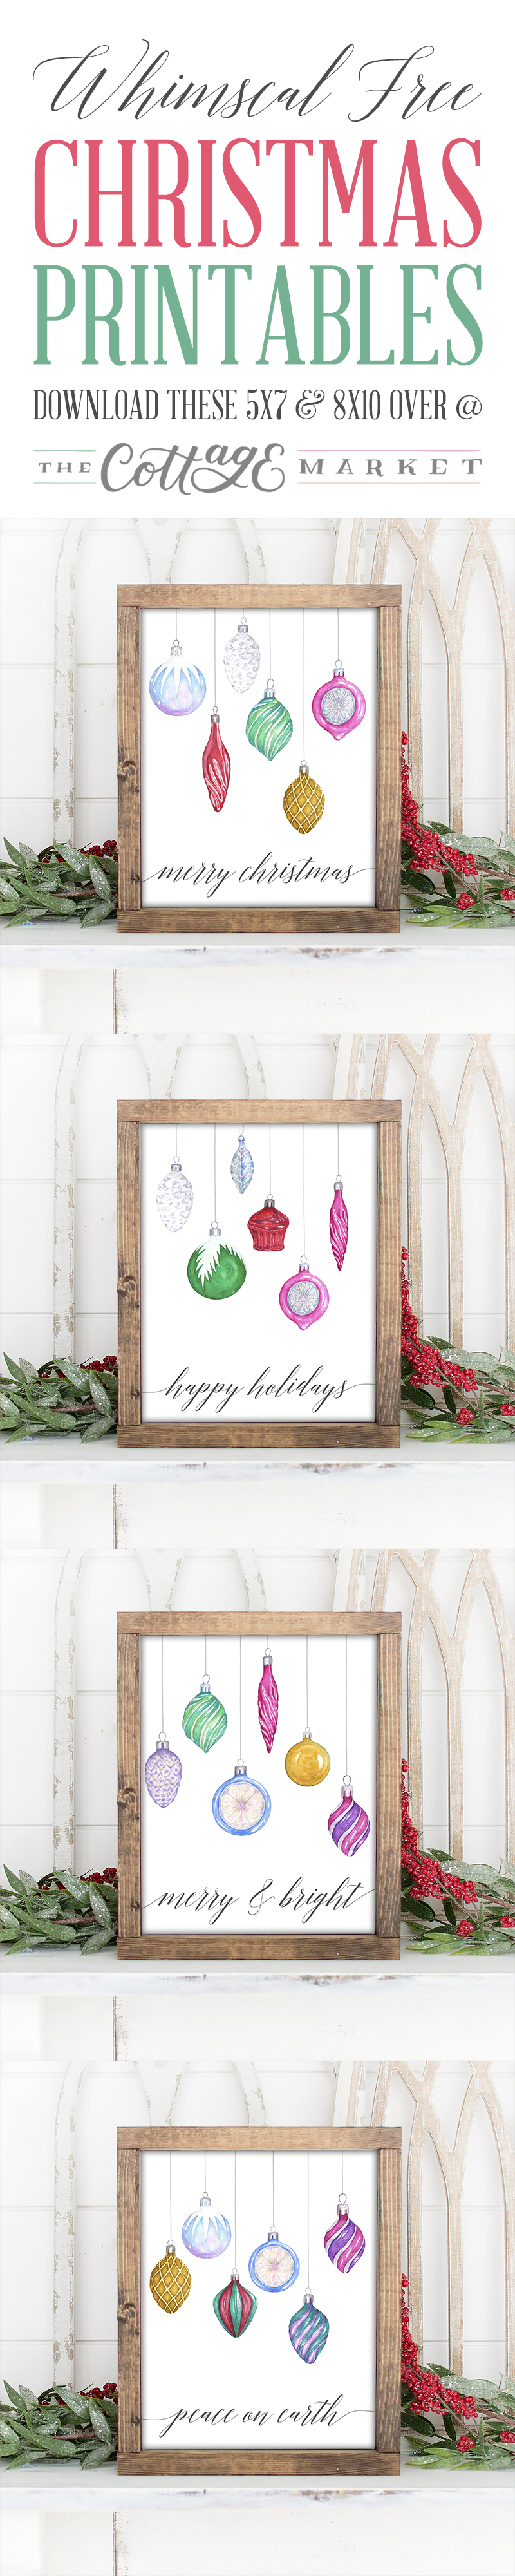 Start your Holiday Decorating with these Pretty and Whimsical Free Christmas Printables we have for your today! They come in 2 sizes for your convenience... ENJOY!